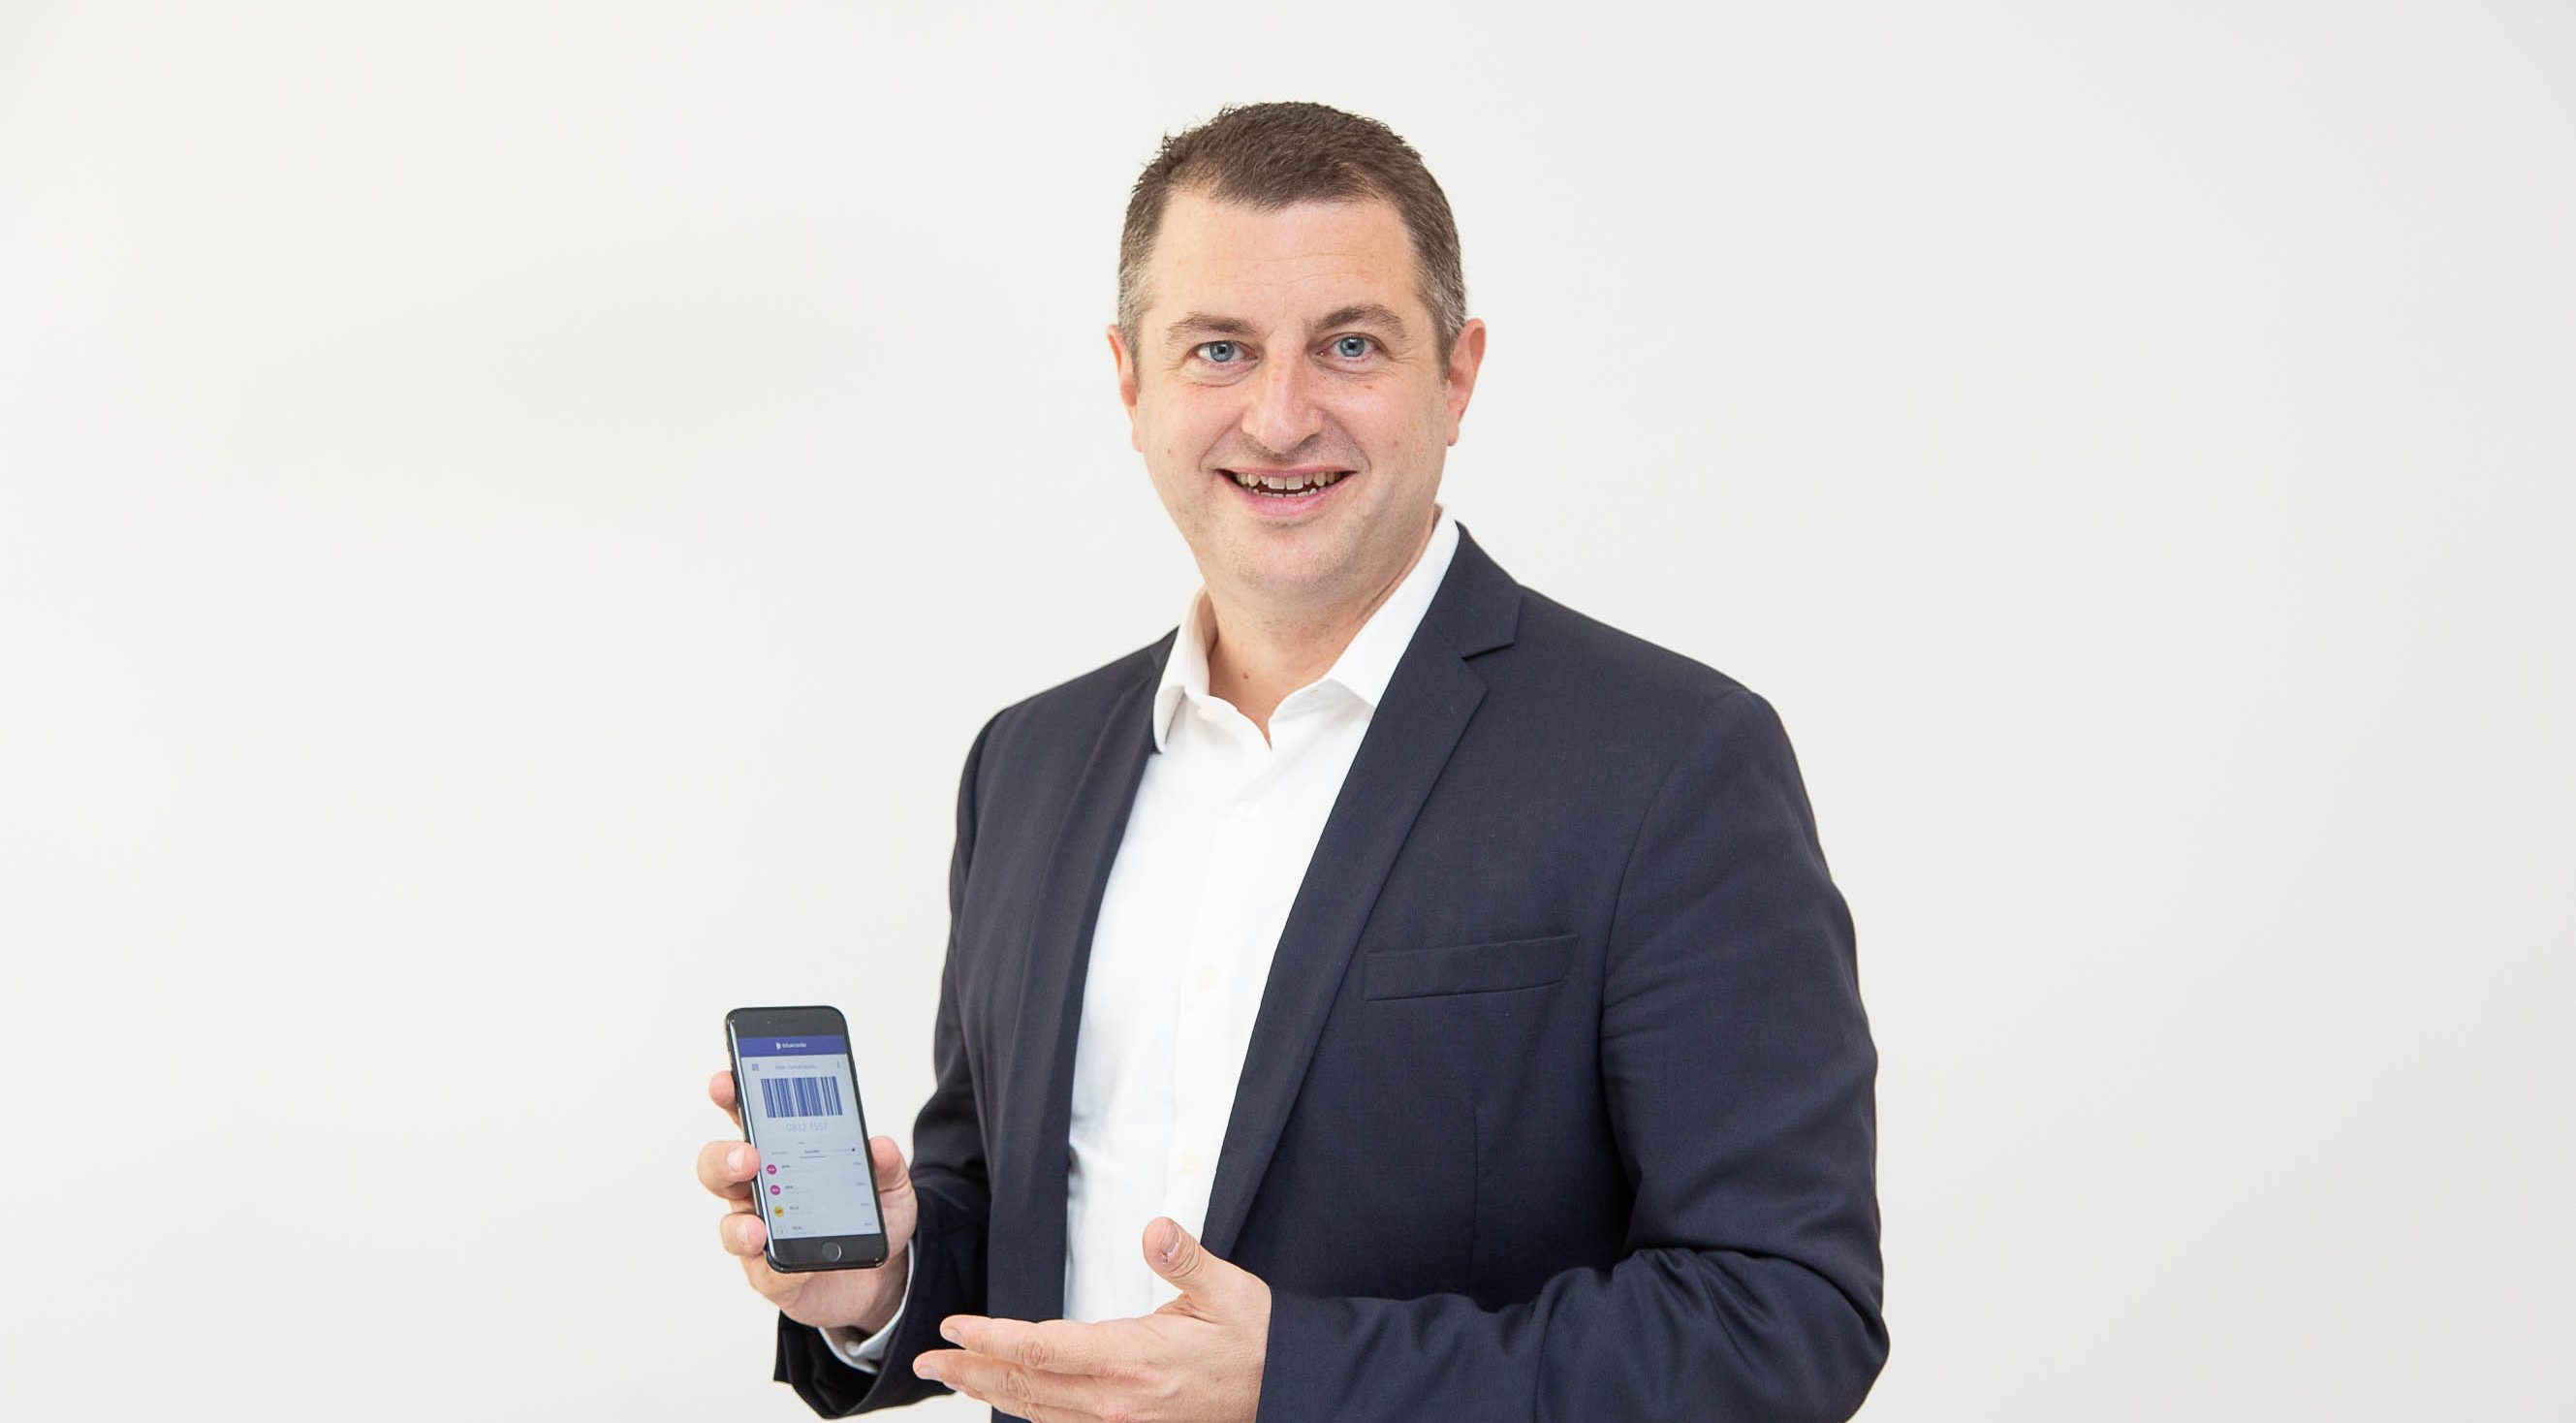 Bluecode-CEO Christian Pirkner äußert sich zum Apple Pay-Launch